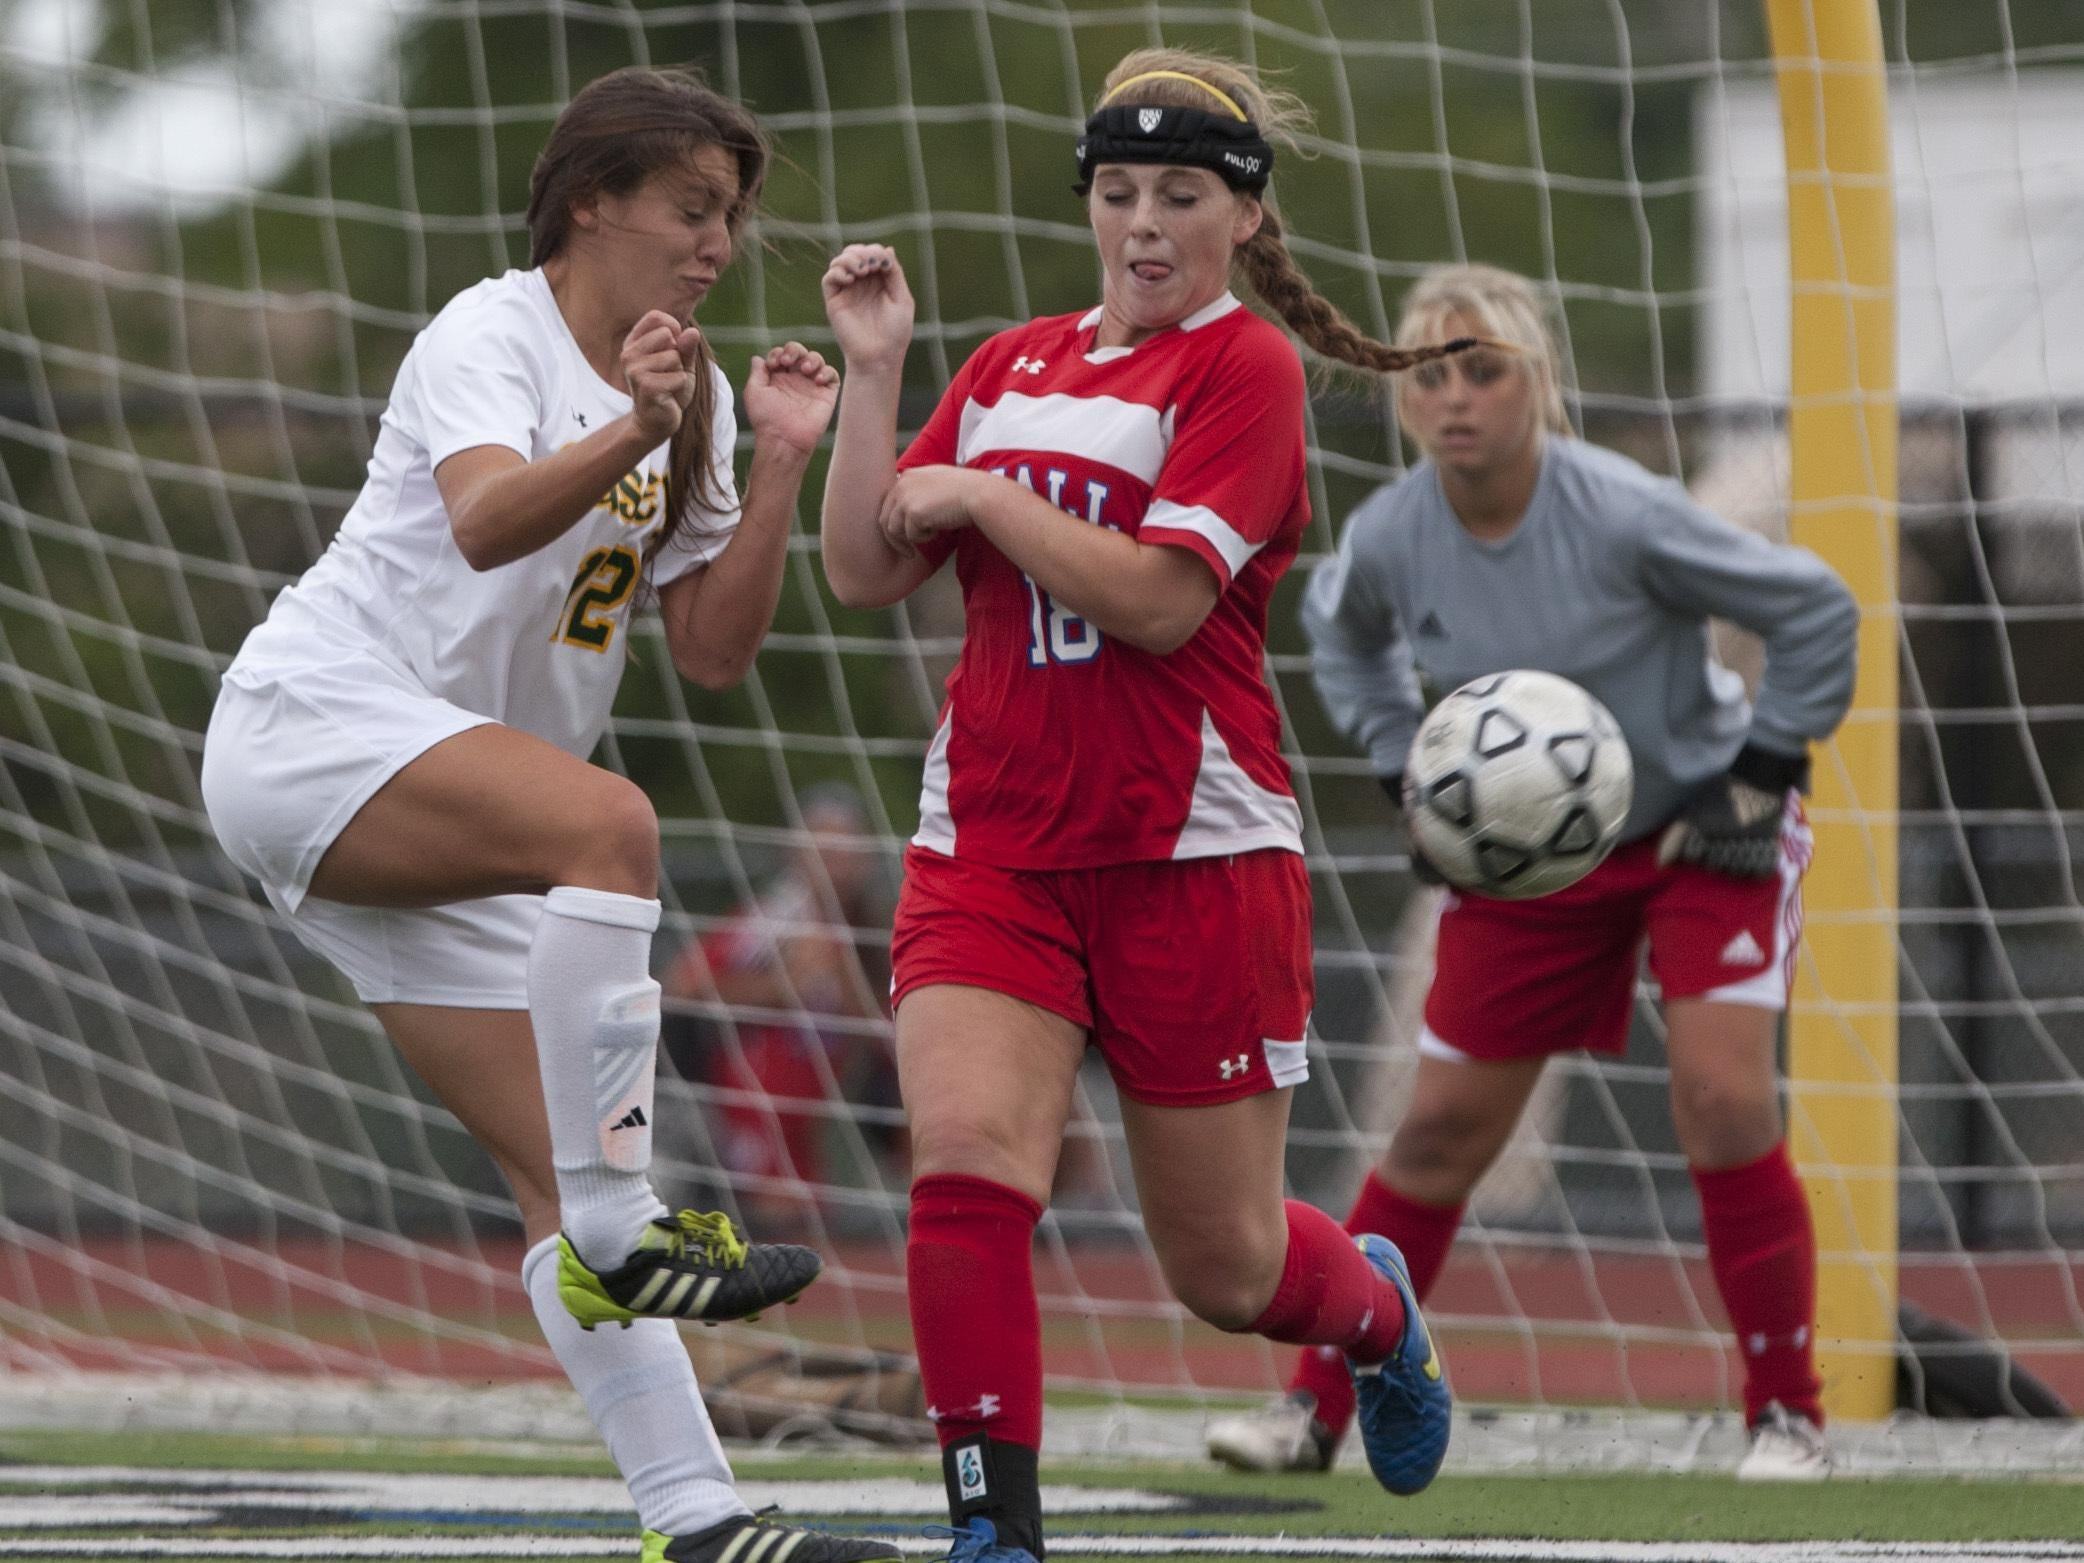 Red Bank Catholic's Sarah Lucia and Wall's Kate Kinsella battle for ball during second half of Wall Girls Soccer vs Red Bank Catholic in Red Bank NJ on September 22, 2015.